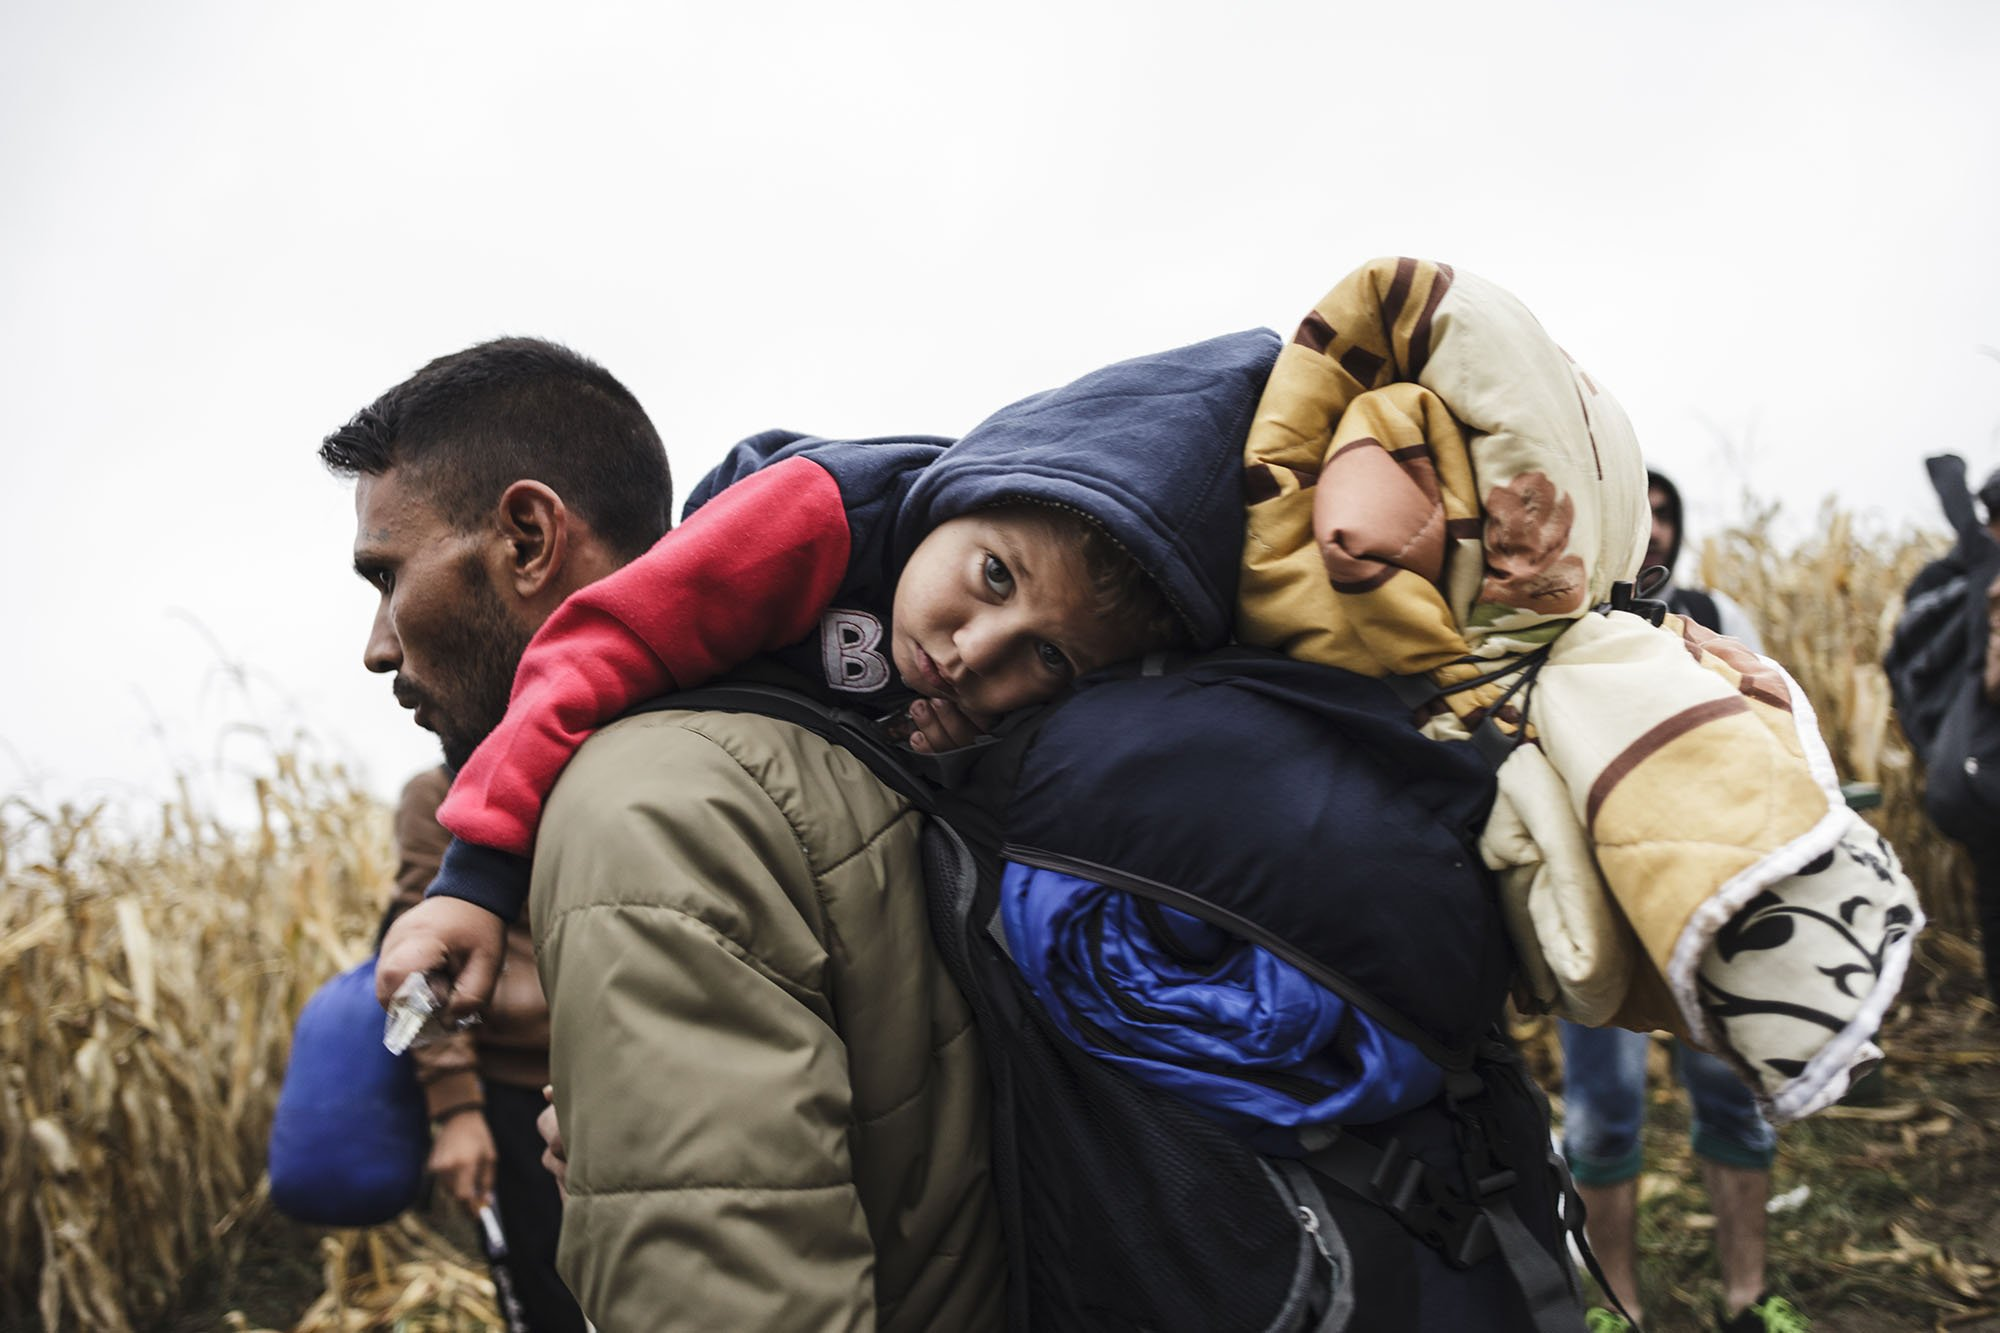 A refugee from Iraq carries his young son as he walks towards Croatia at the Bapska border in Serbia. Photo: Achilleas Zavallis